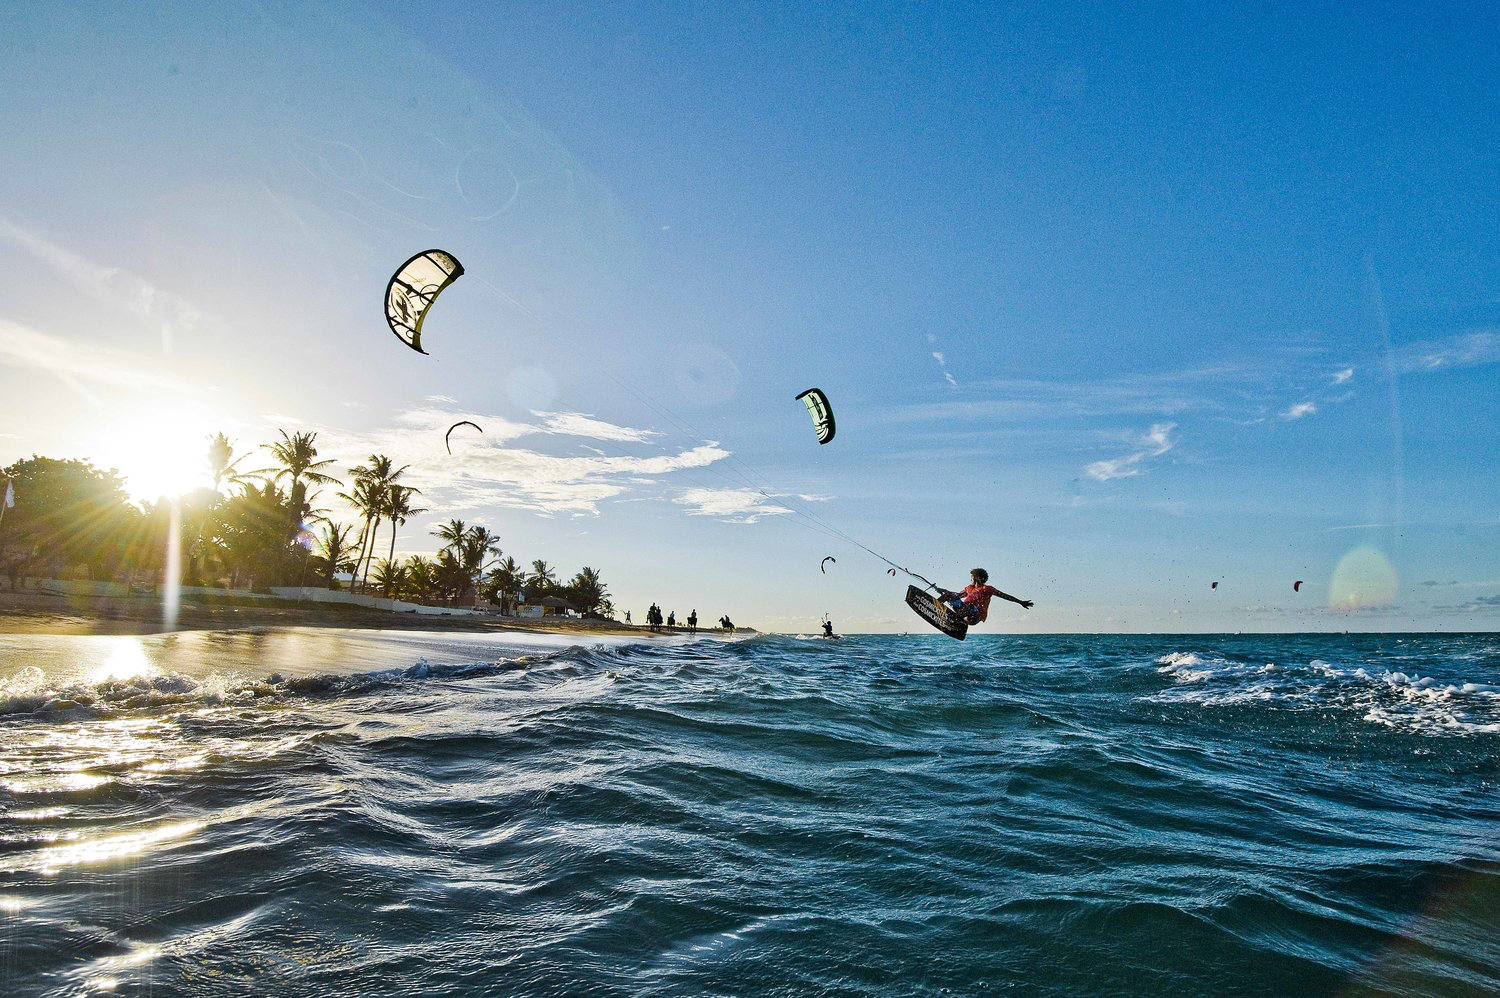 Cabarete,+Dominican+Republic,+kitesurfing,+adventure,+active+vacation.jpg